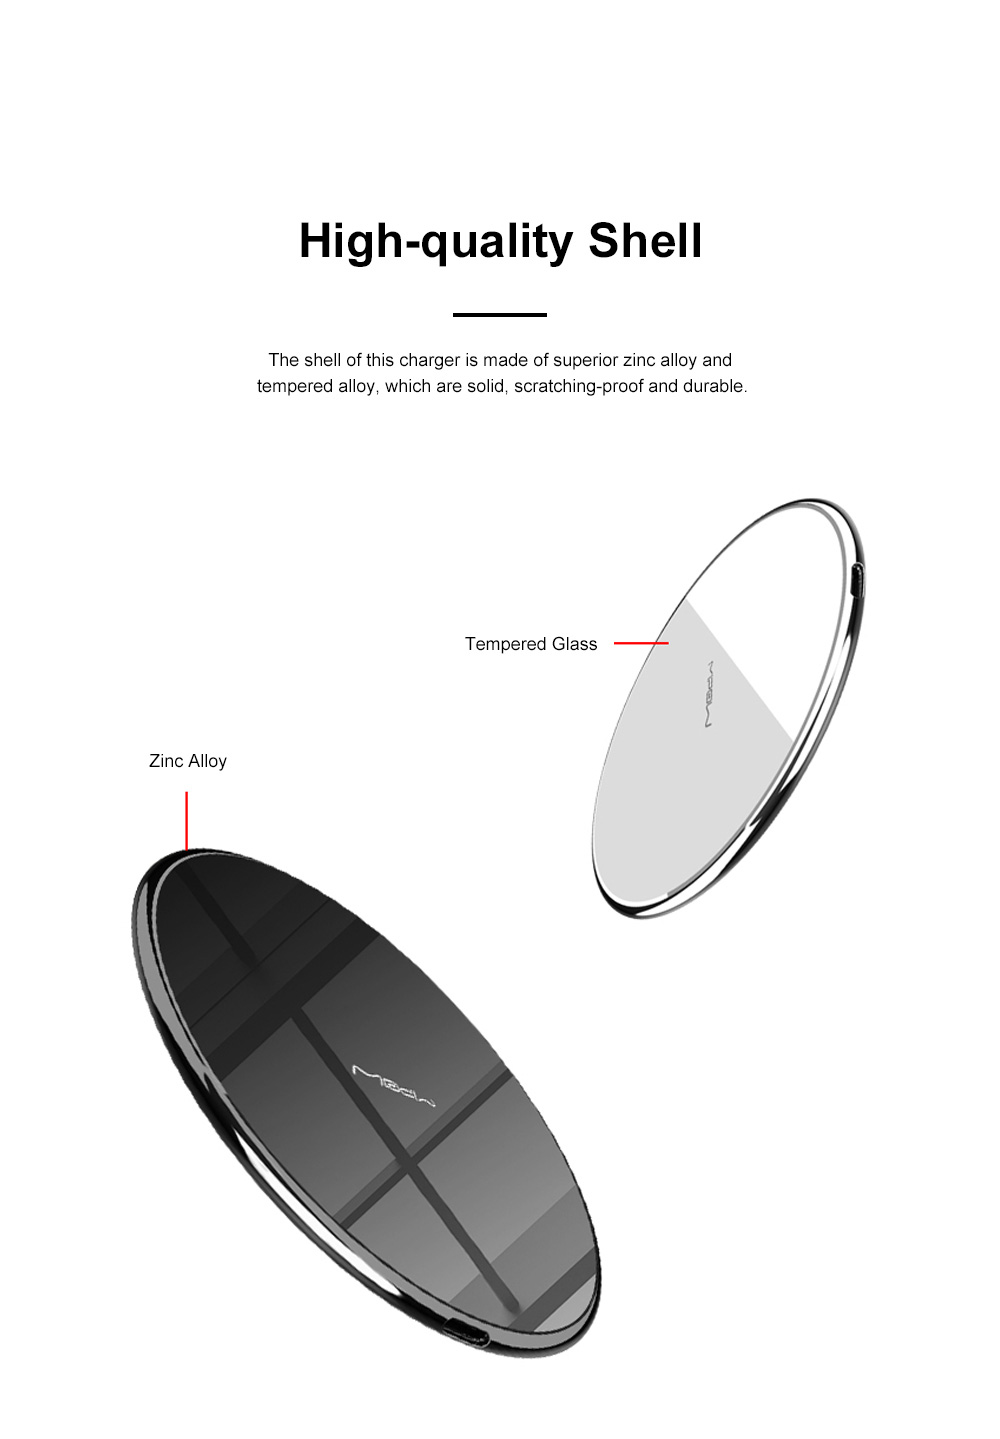 MIPOW Thin Portable Zinc Alloy Tempered Glass Quick Charging Wireless Charger for iPhone Xiaomi Samsung Huawei Nokia 2